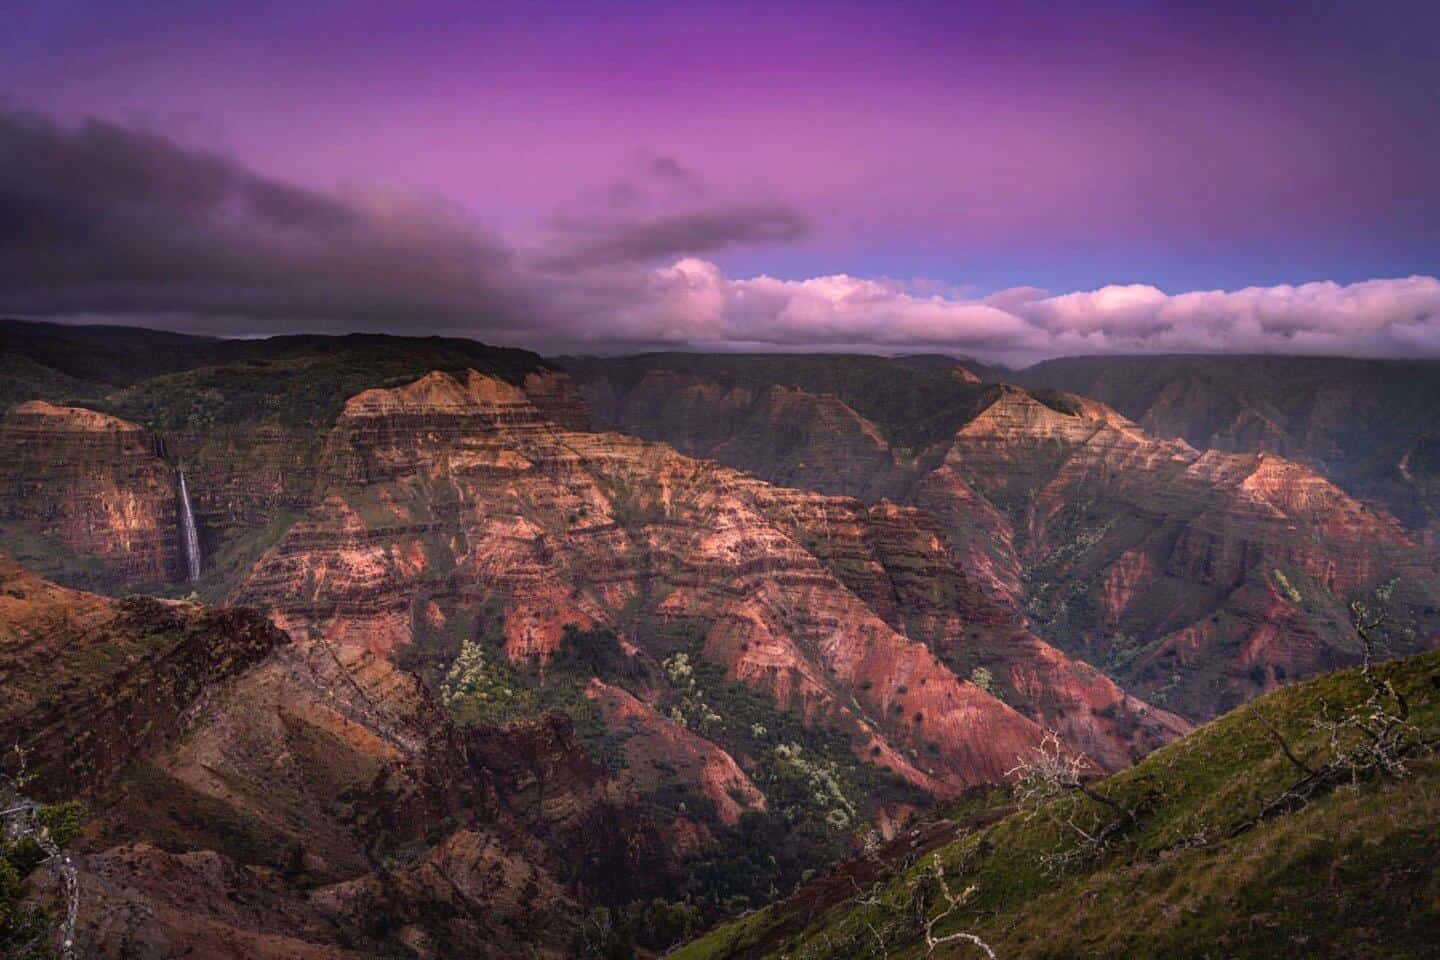 Blue hour photography of the Waimea Canyon in Kauai.